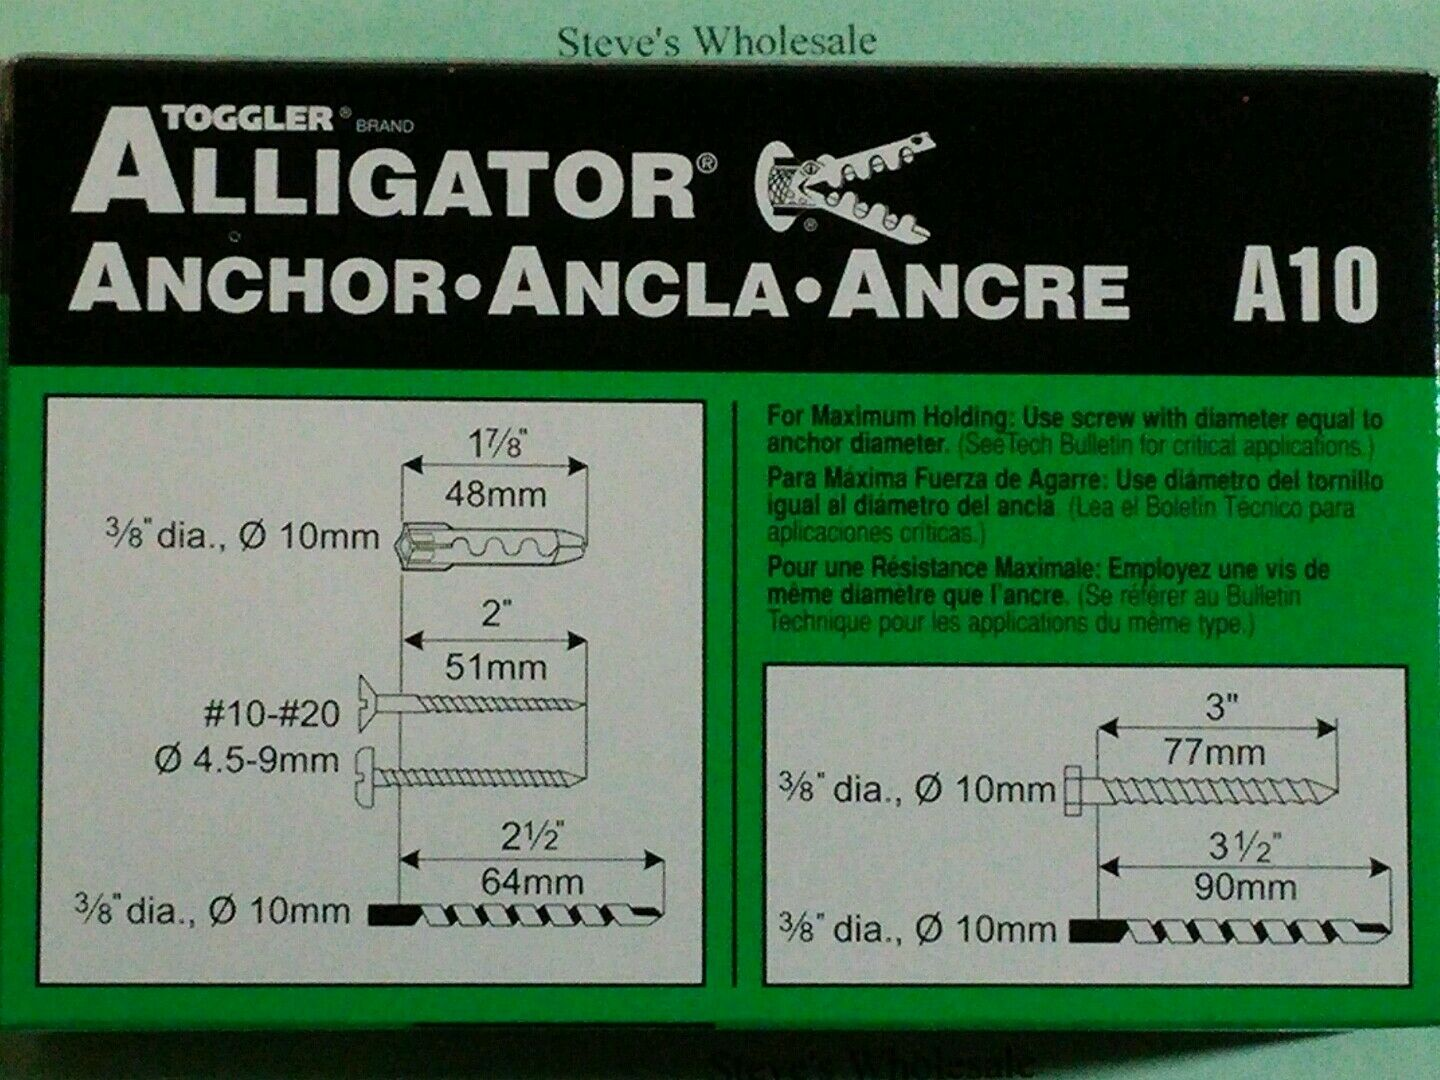 Toggler Alligator Toggler Alligator A10 Flush Mount Anchor Polypropylene Made In Us For 10 To